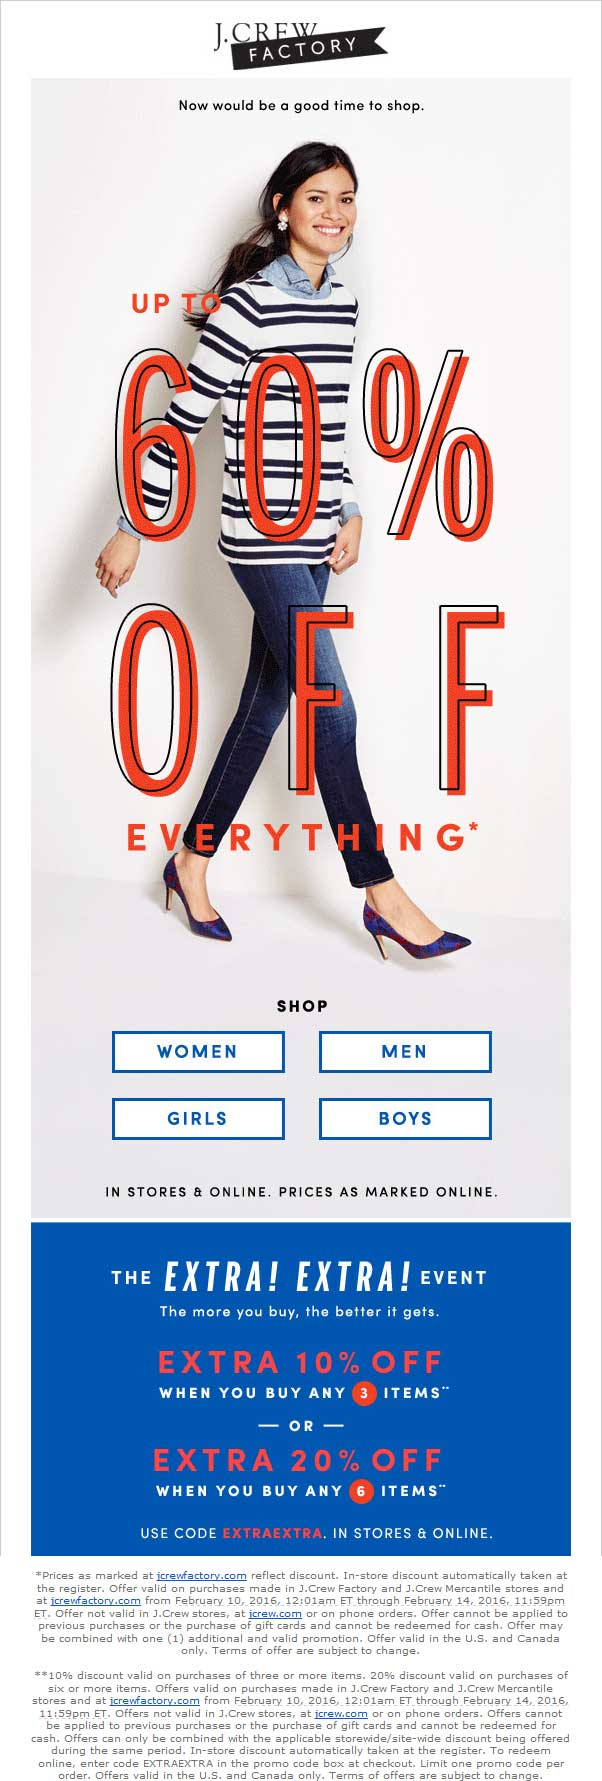 J.Crew Factory Coupon July 2018 Extra 20-60% off everything at J.Crew Factory, or online via promo code EXTRAEXTRA